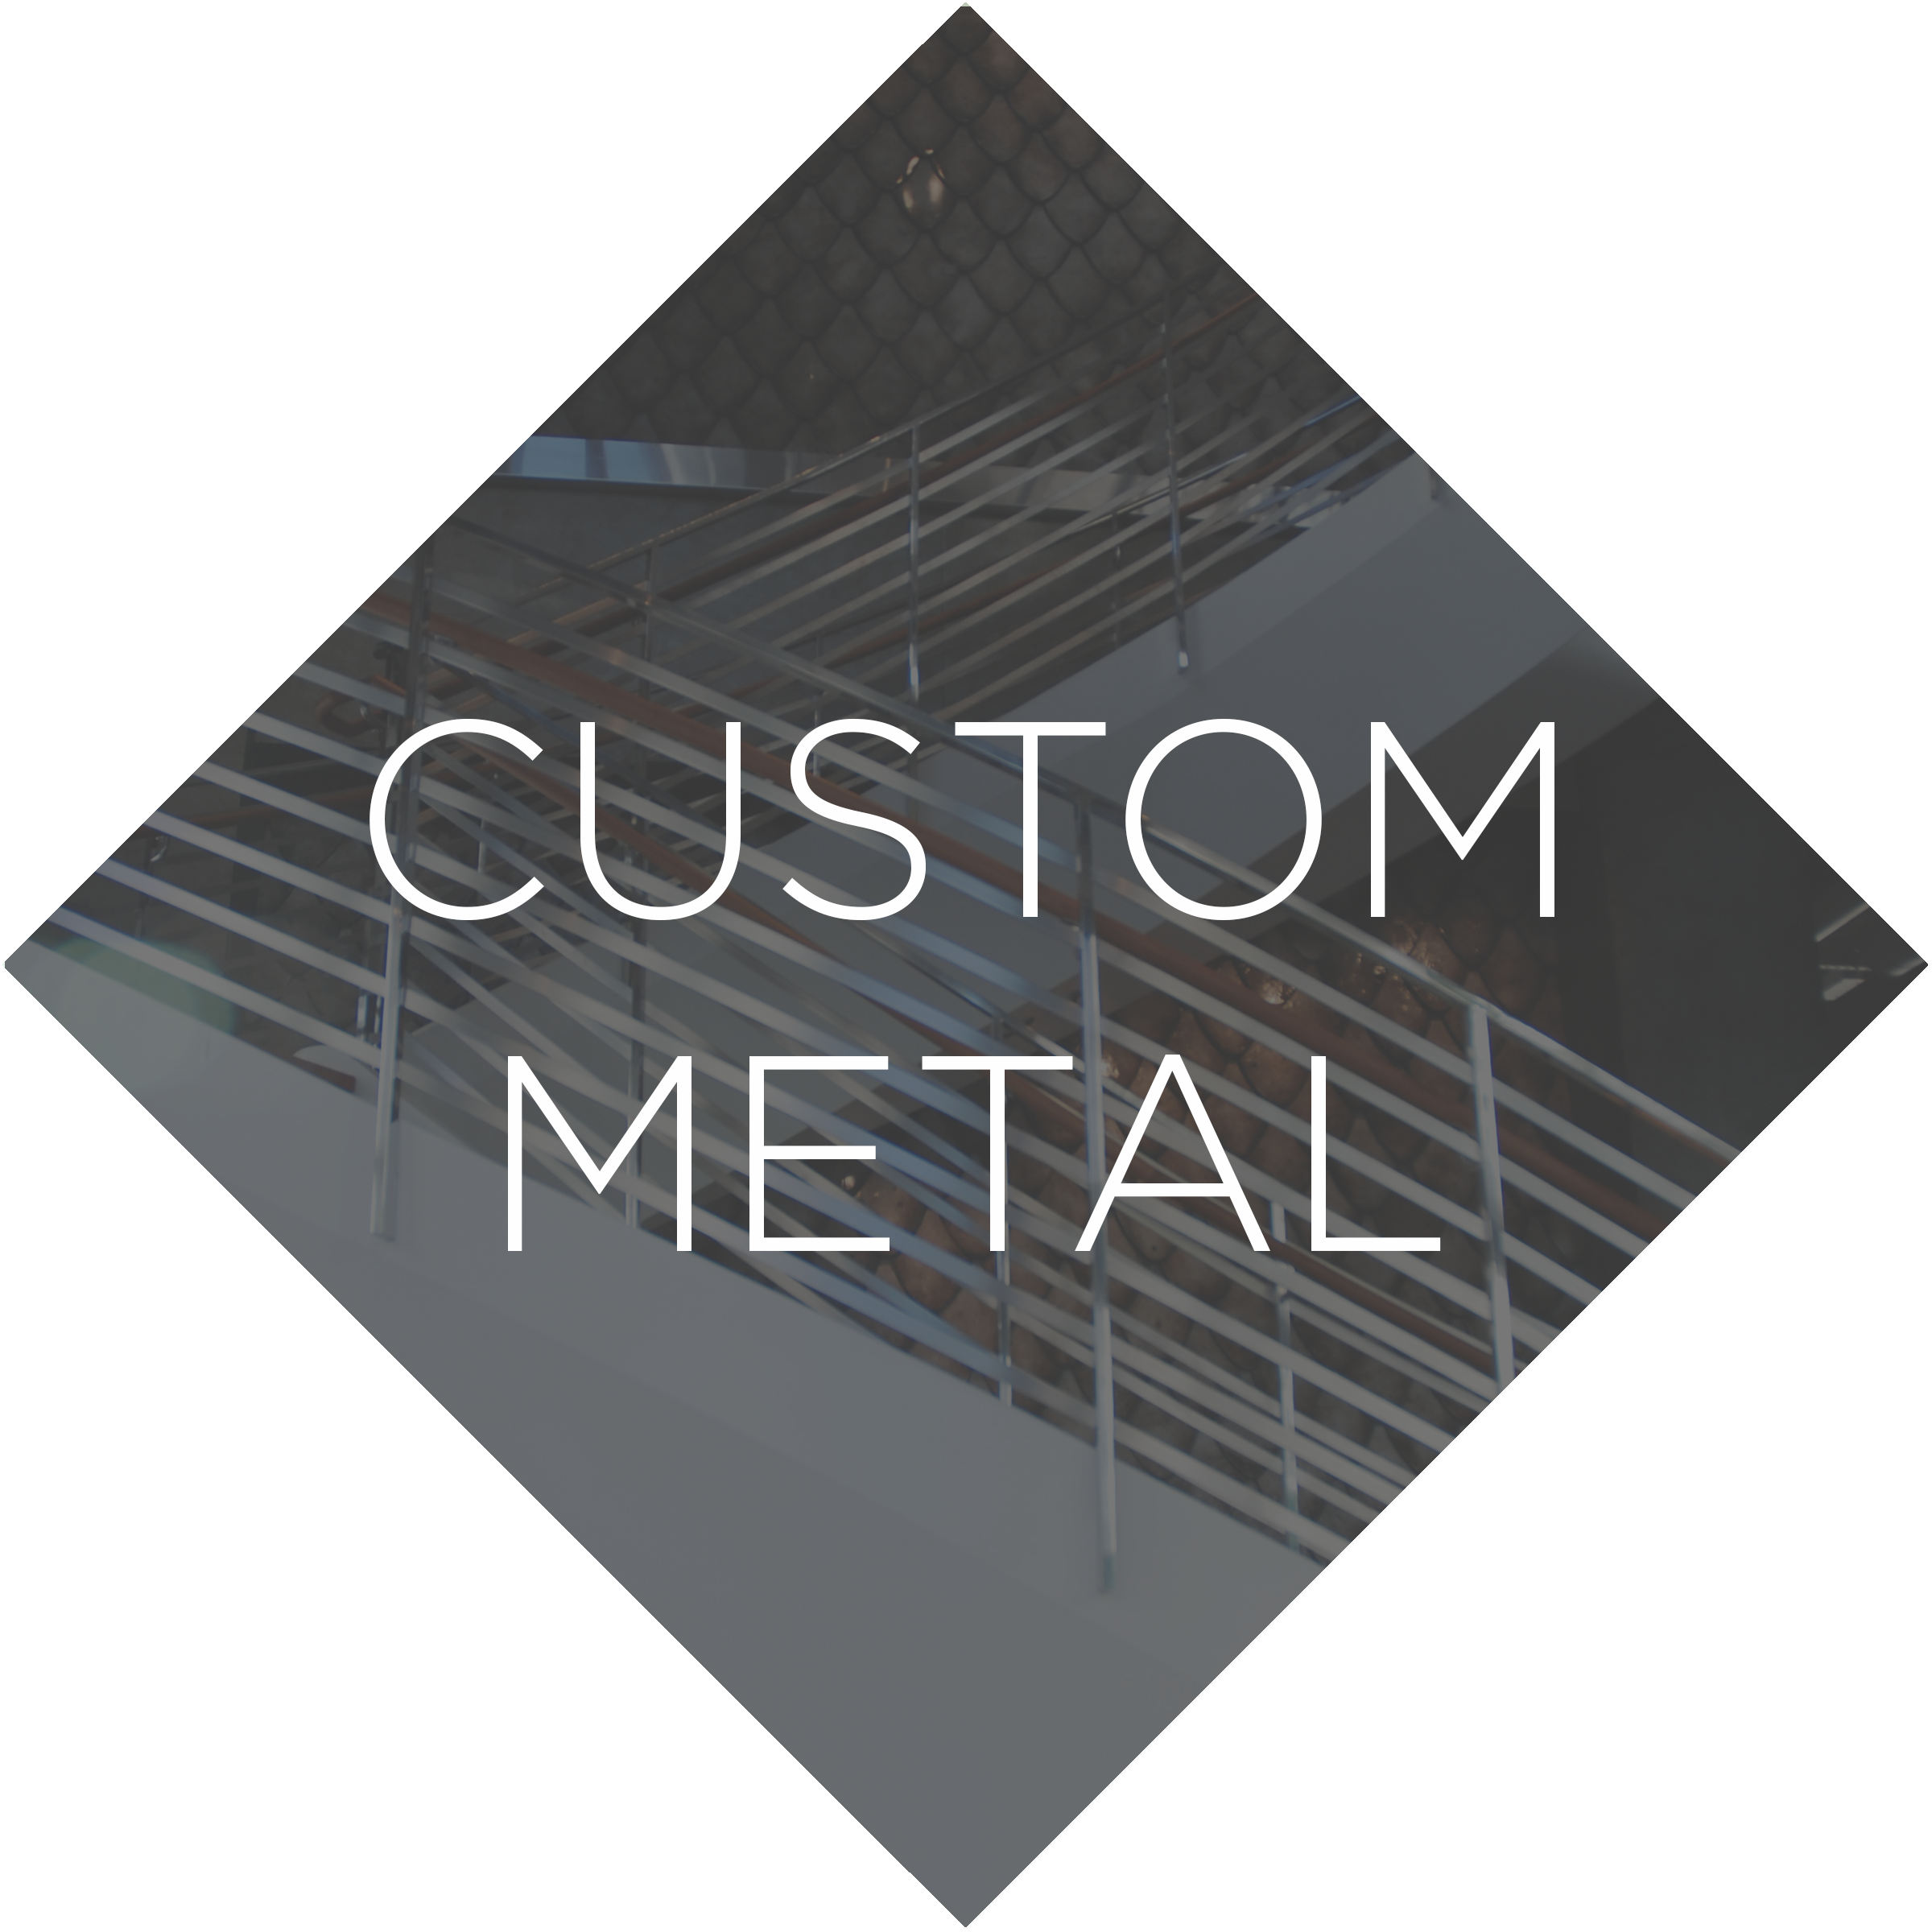 Custom Metal.png